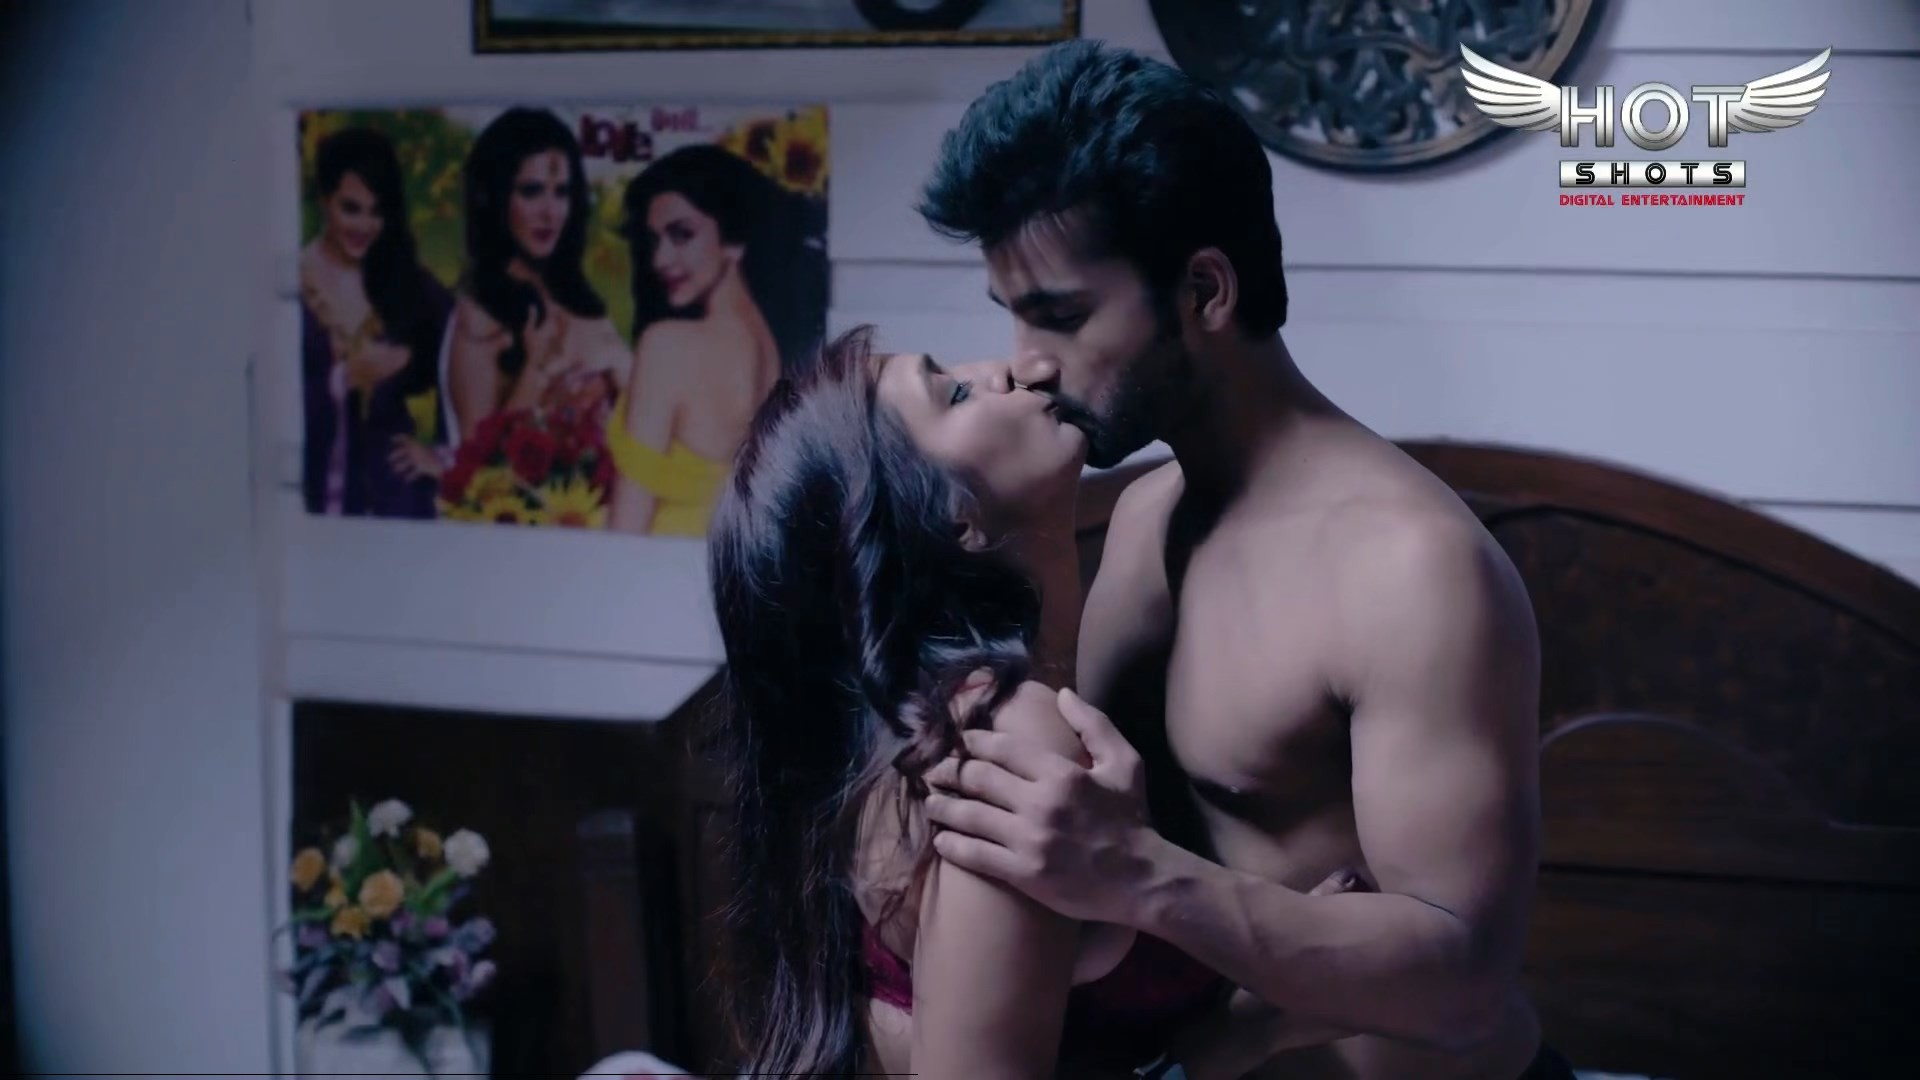 052aW - 18+ Intercourse 3 (2020) HotShots Originals Hindi Short Film 720p HDRip 400MB x264 AAC